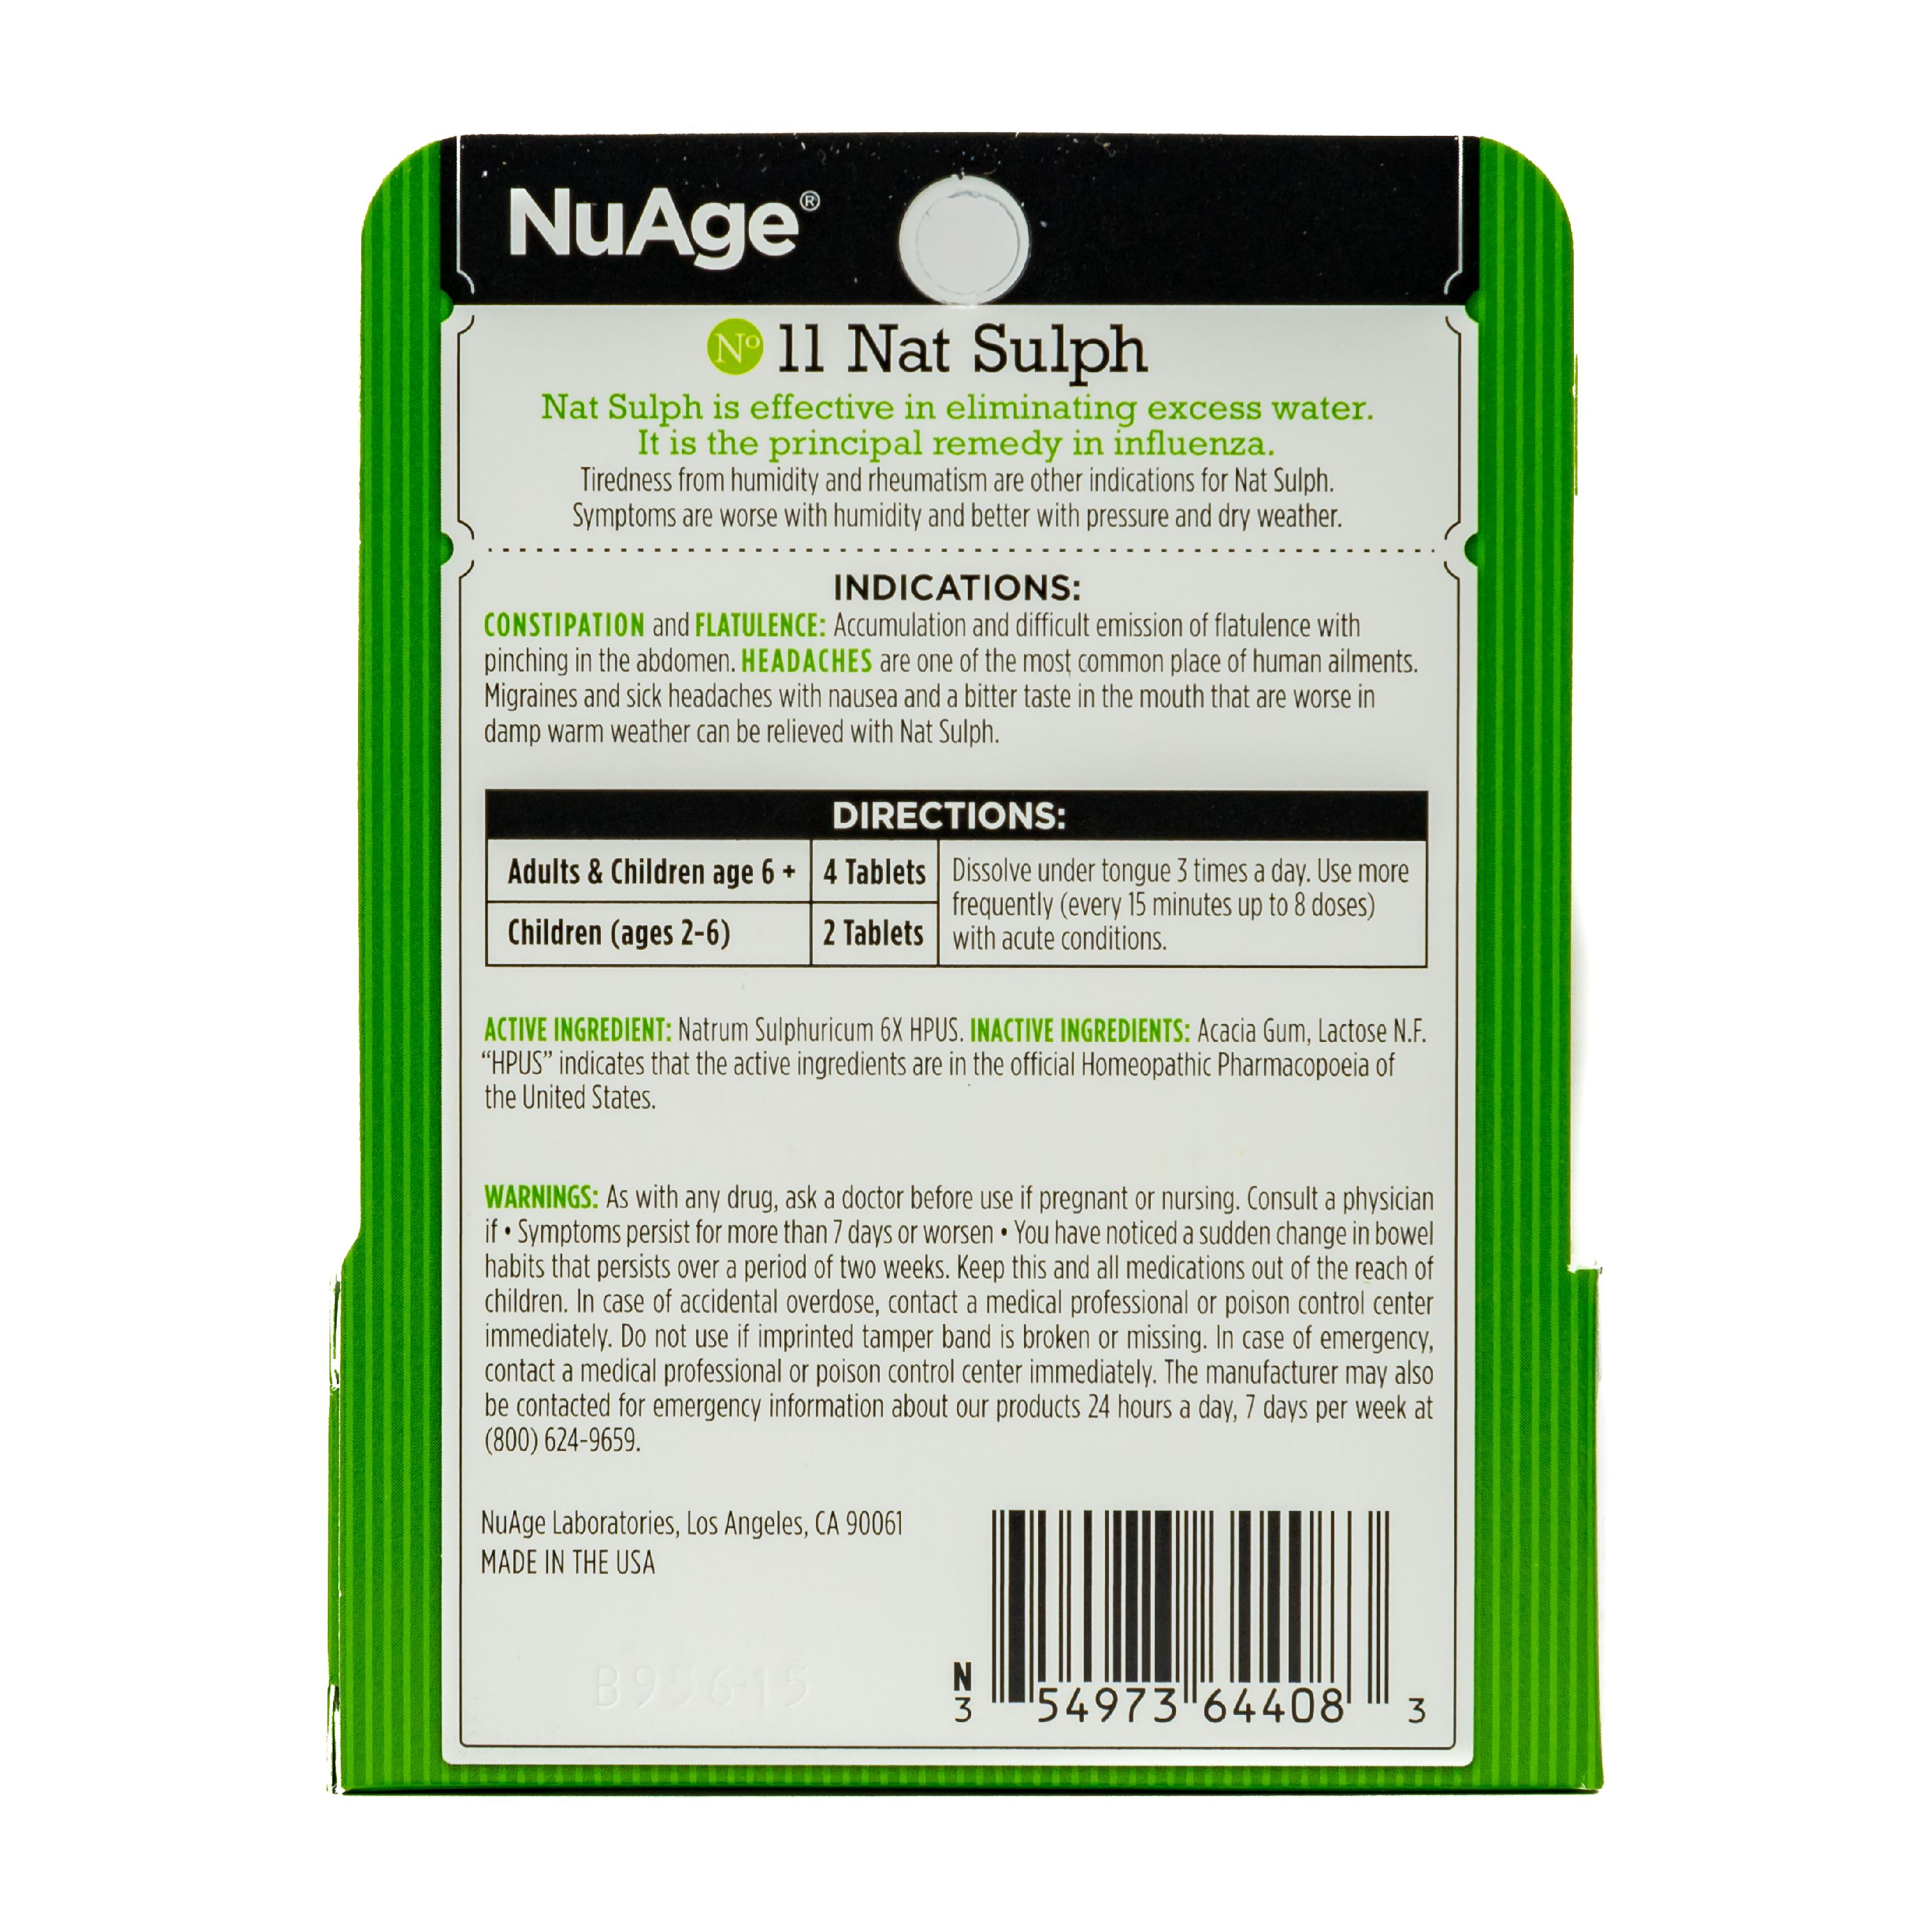 NuAge Homeopathic #11 Natrum Sulphuricum Tablets, Natural Relief of  Constipation, Flatulence and Headaches, 125 Count